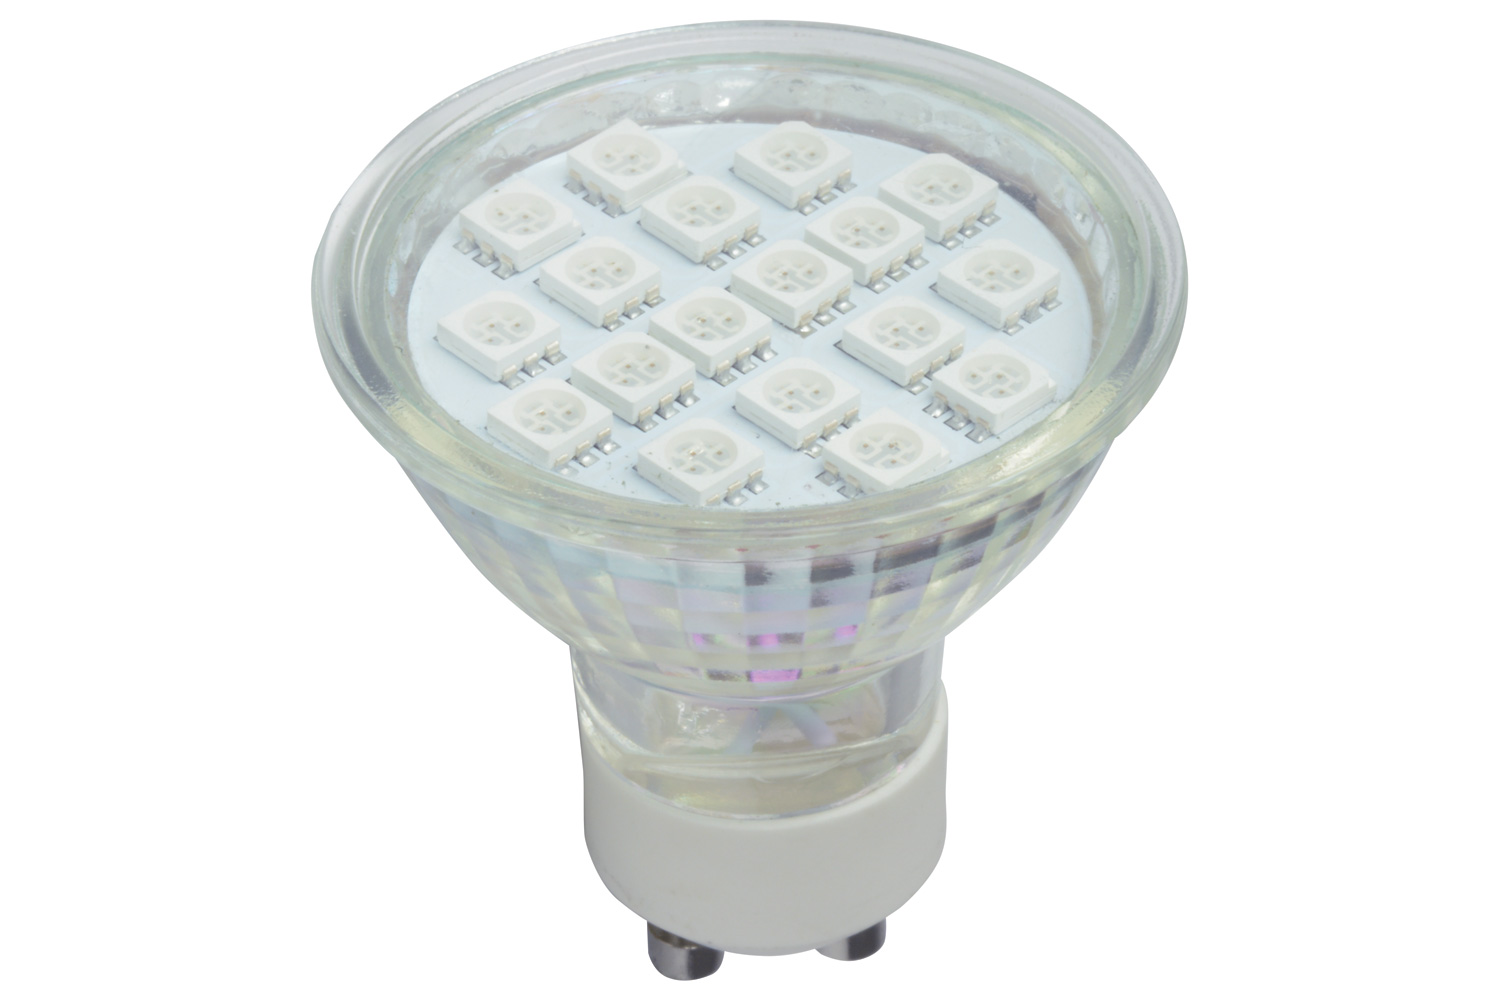 lyyt GU10 18 LED lamp - blue